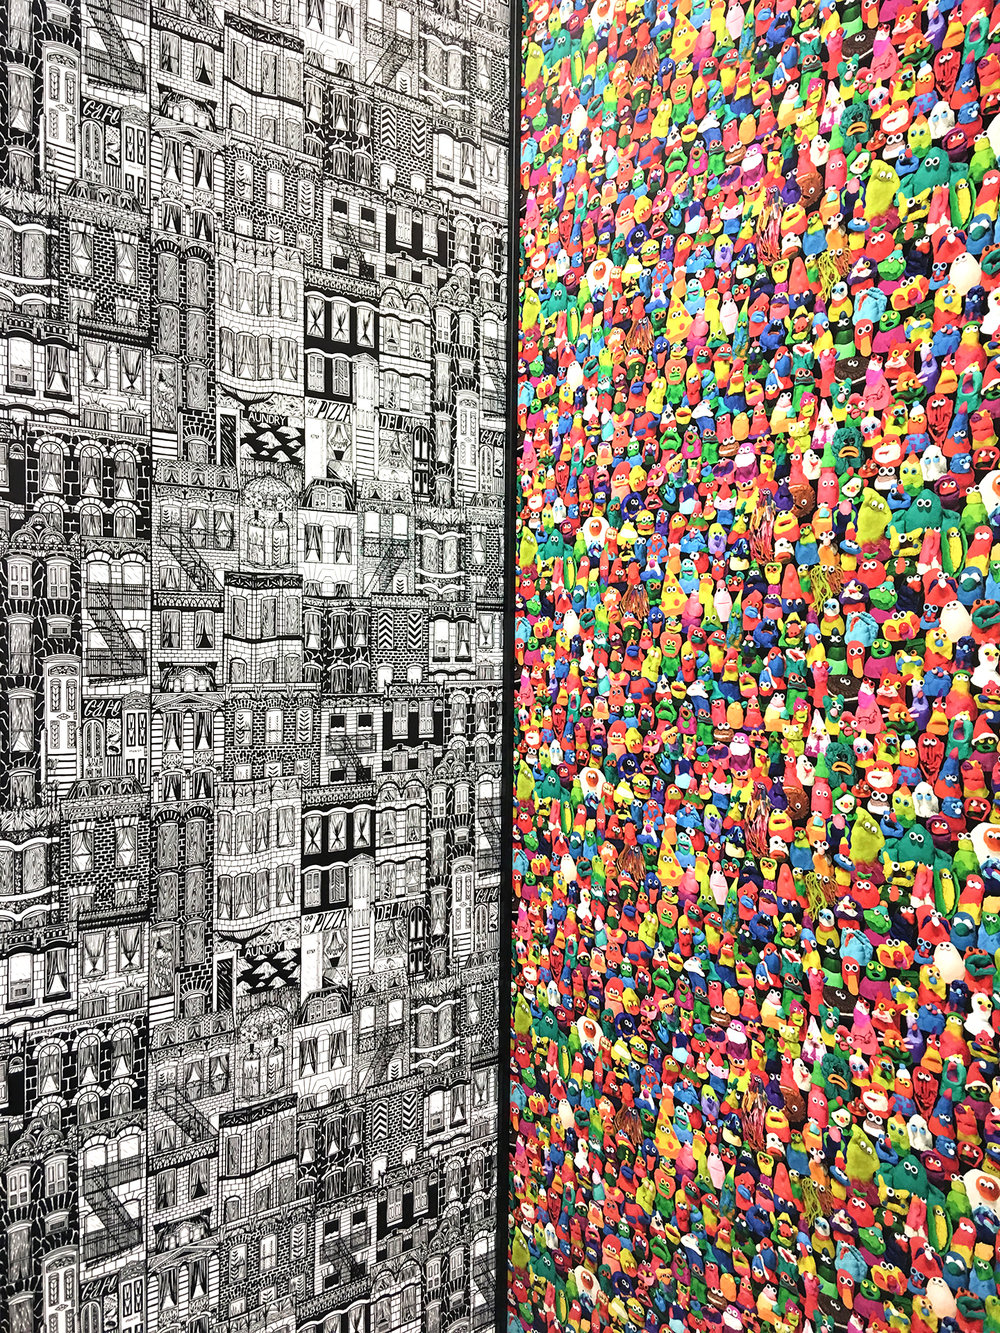 Wallpaper. On the right by Jon Burgerman. All the characters are made out of Play-Doh and then photographed.